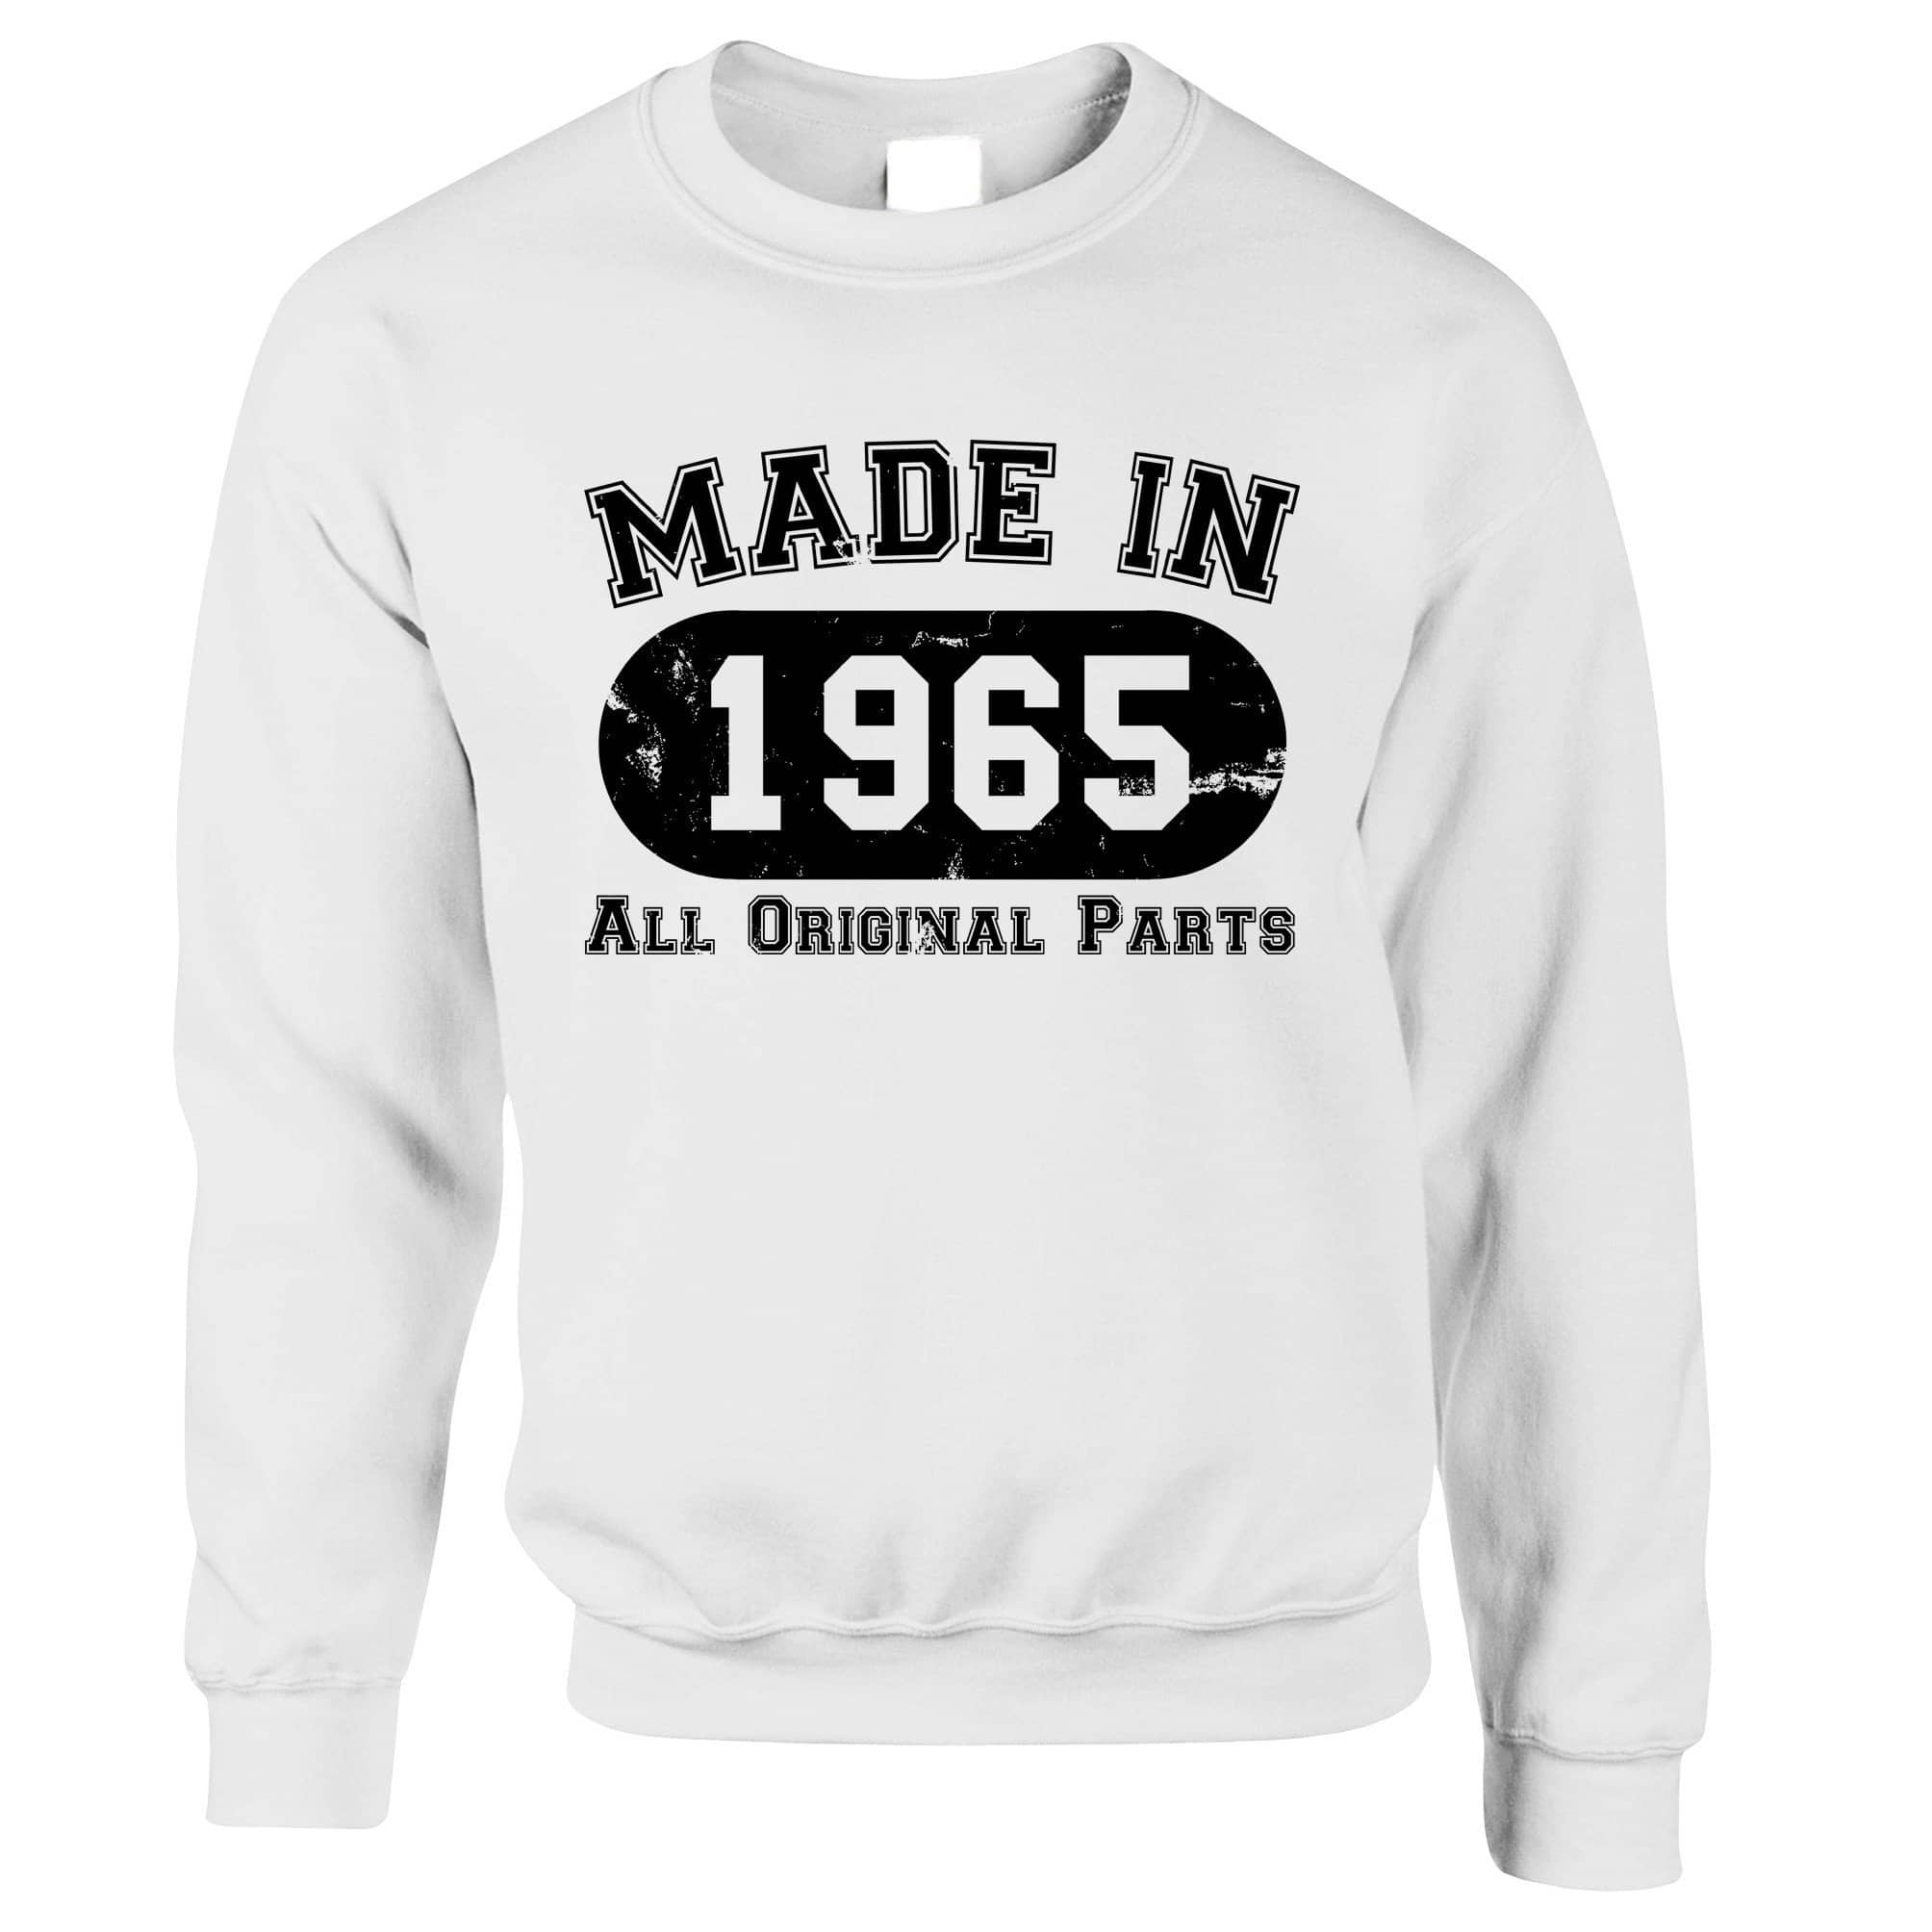 Made in 1965 All Original Parts Sweatshirt Jumper [Distressed]